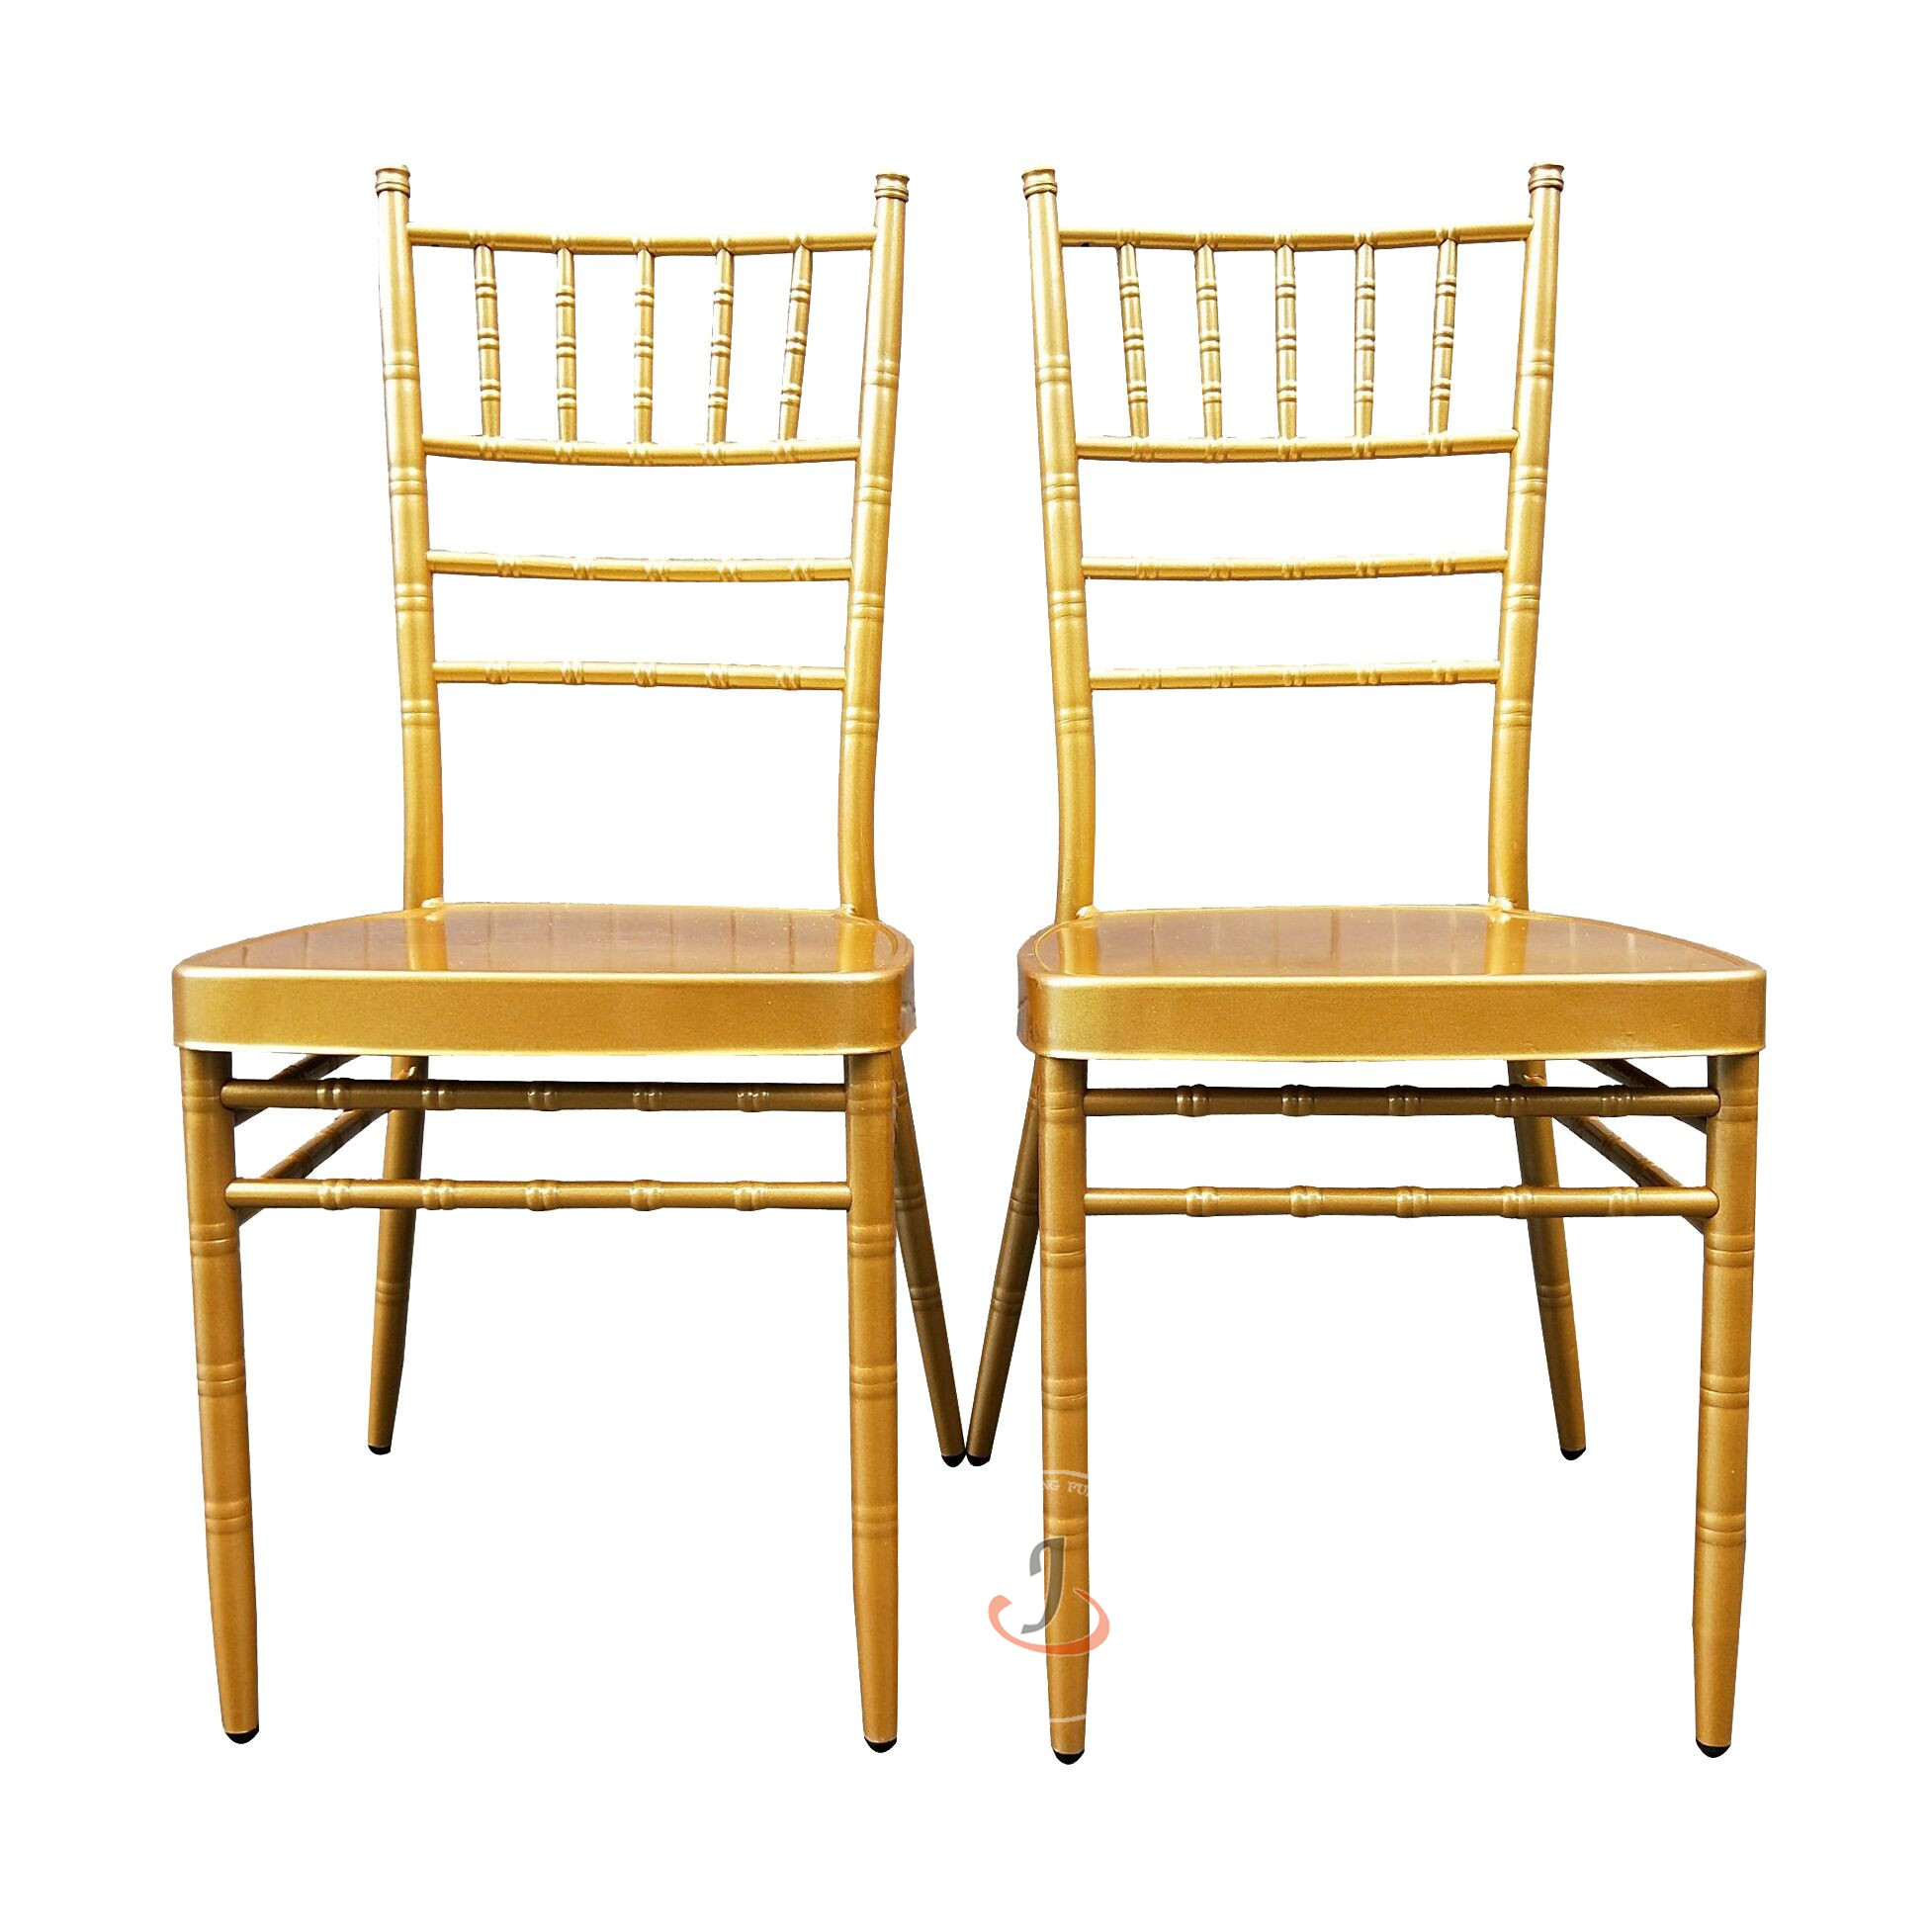 Trending Products Design Iron Comfortable Church Chair -